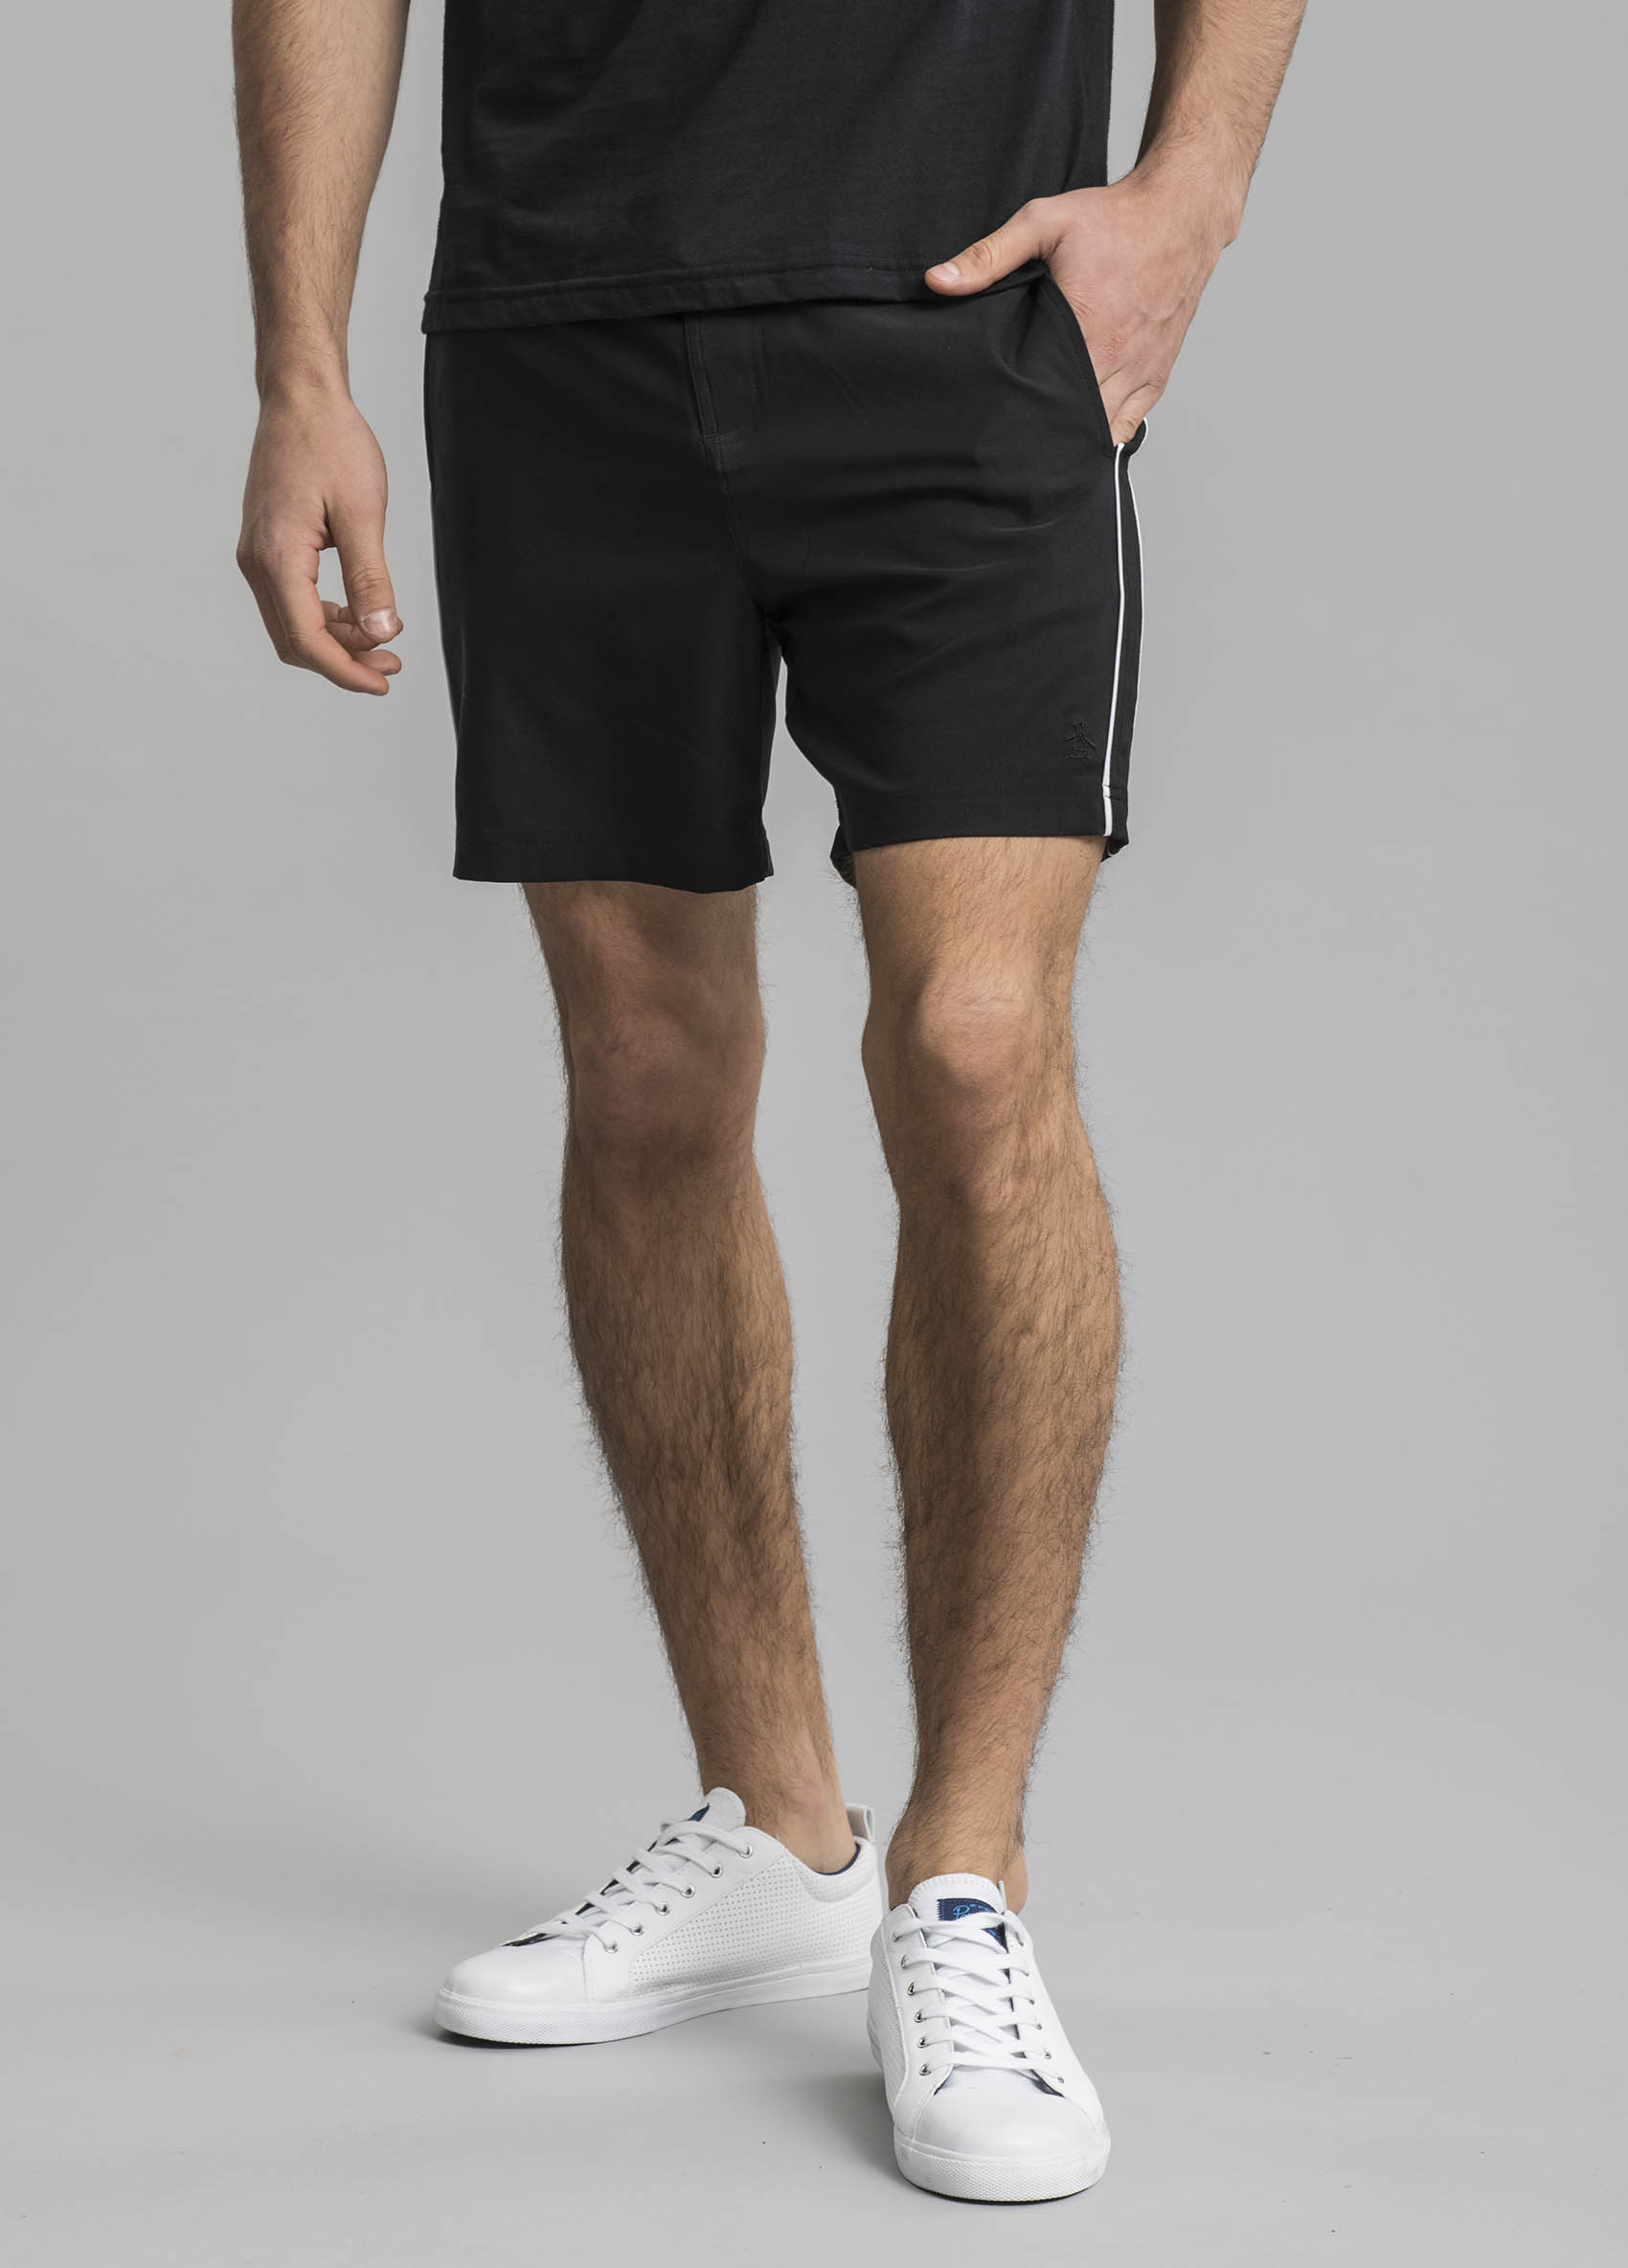 penguin_the-earl-volley-fixed-waist-swim-short_30-18-2021__picture-11740